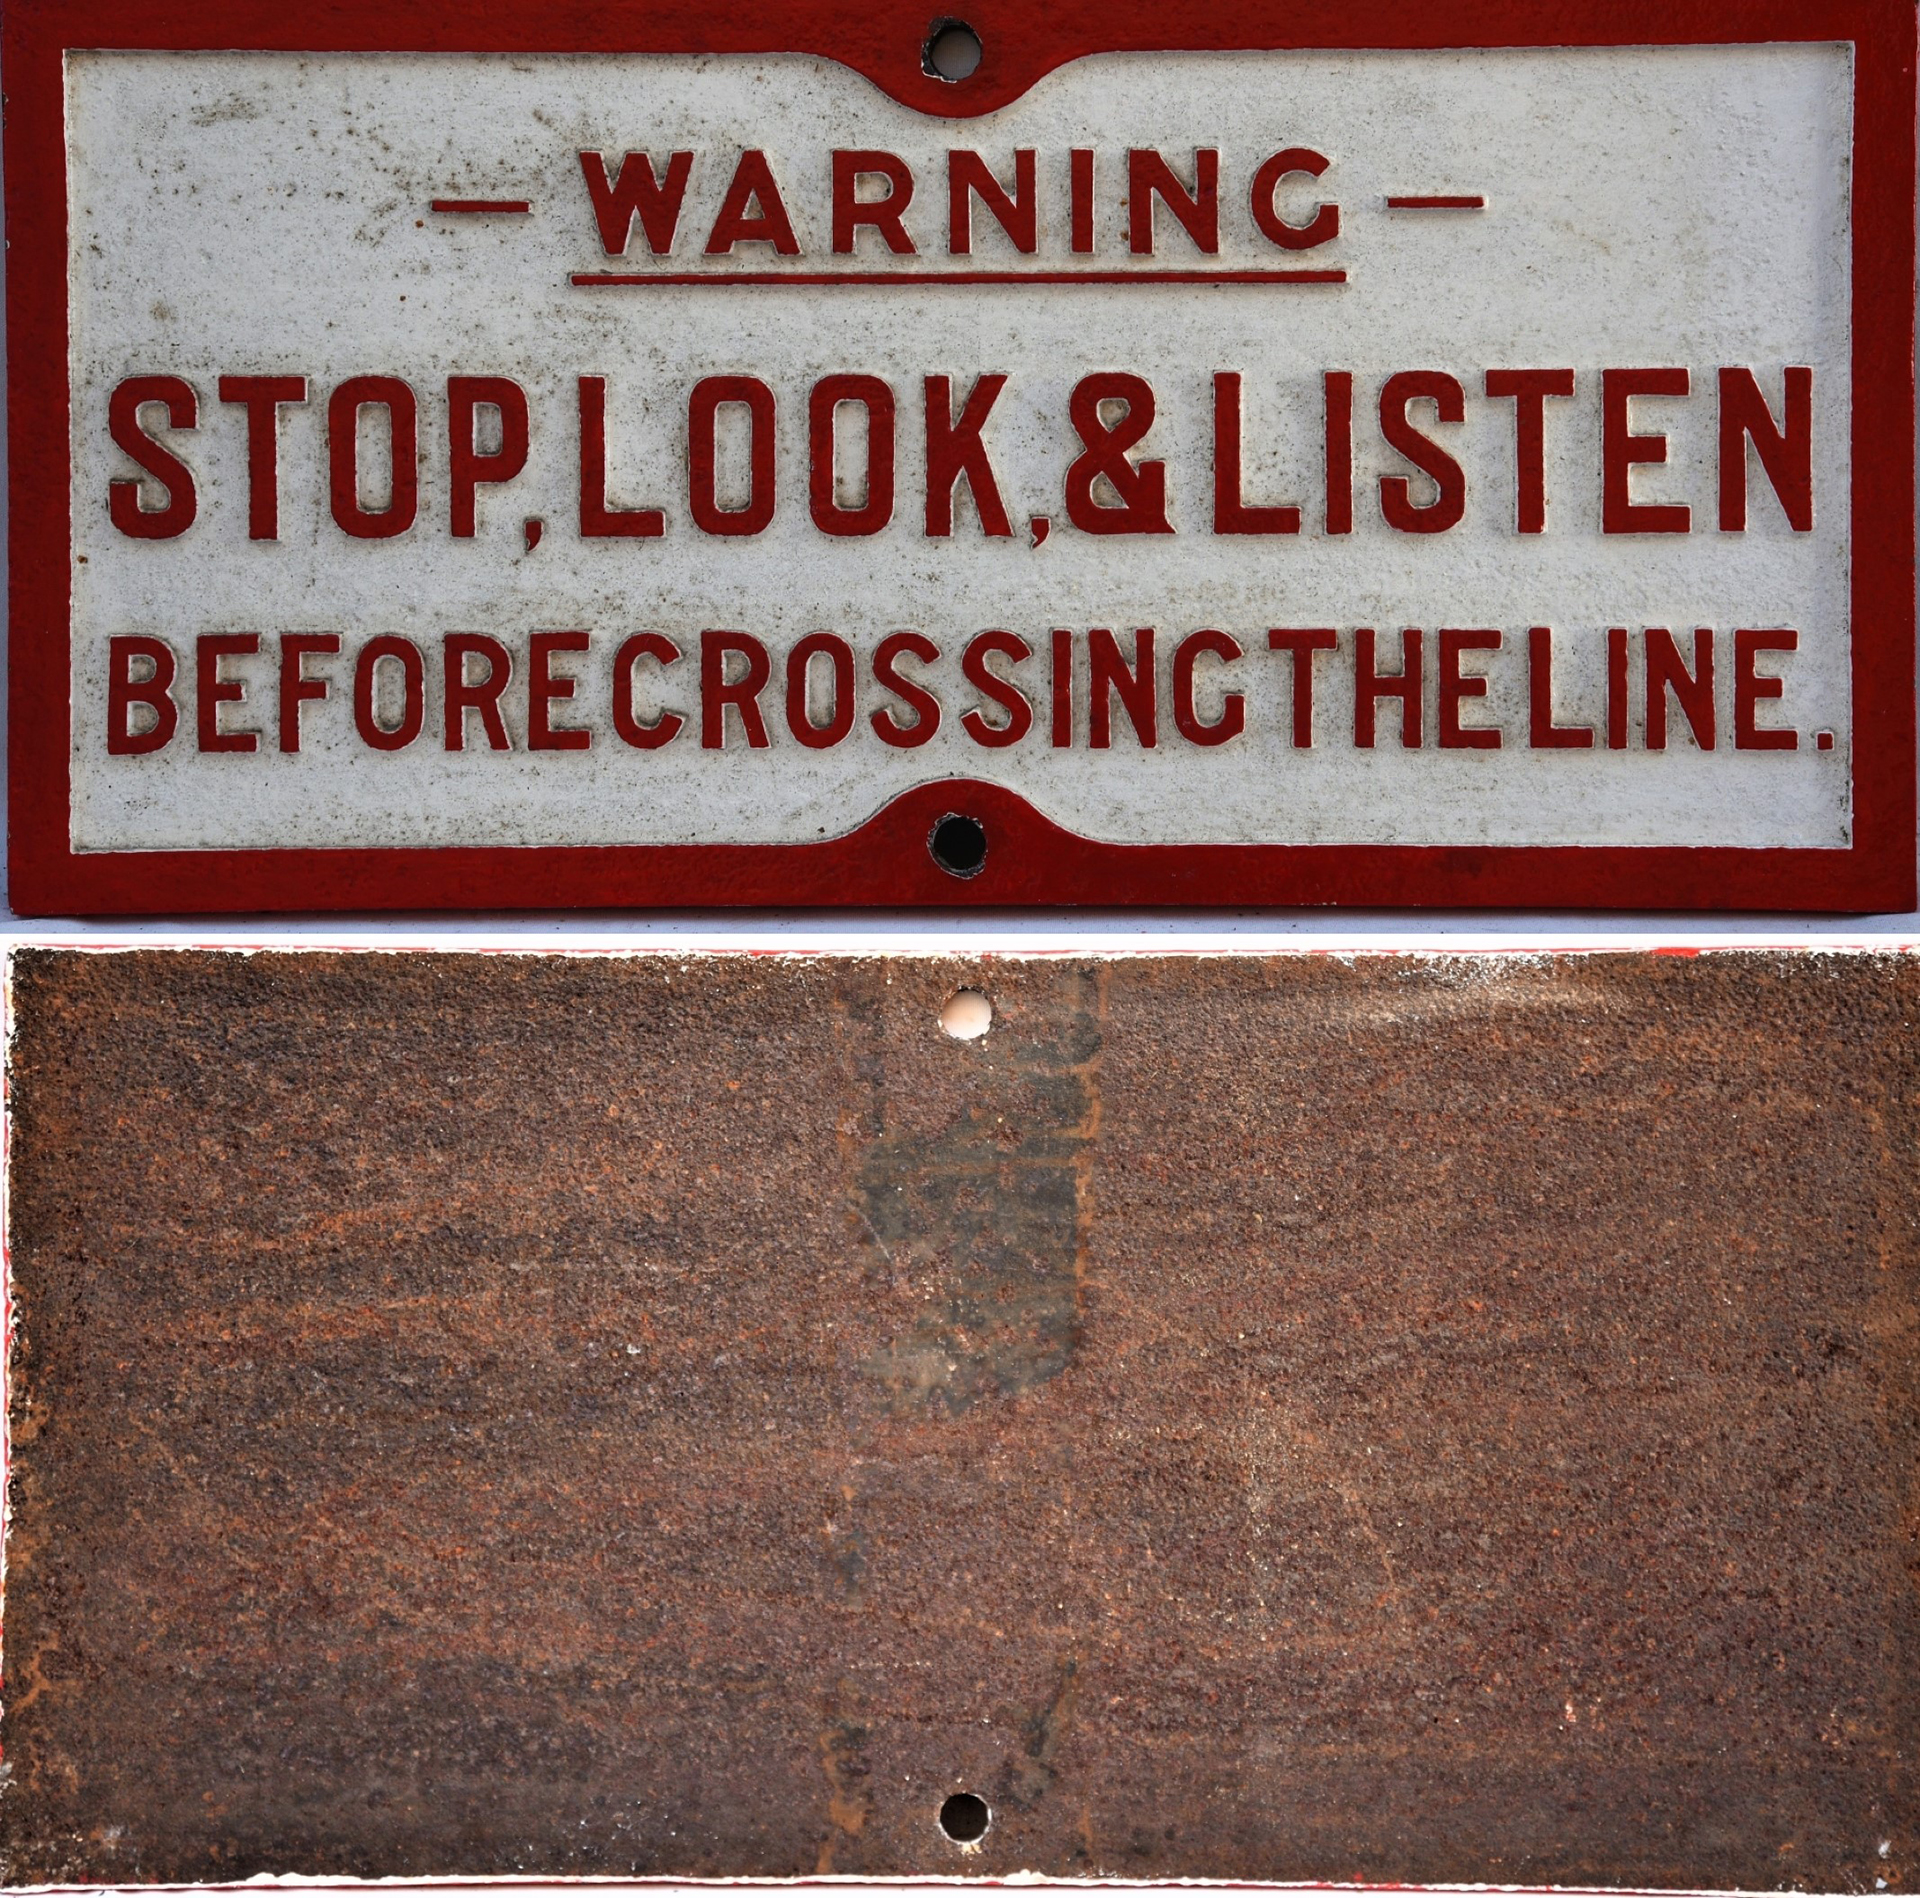 LSWR / SR Cast Iron railway warning sign. STOP - LOOK & LISTEN BEFORE CROSSING THE LINE. Front